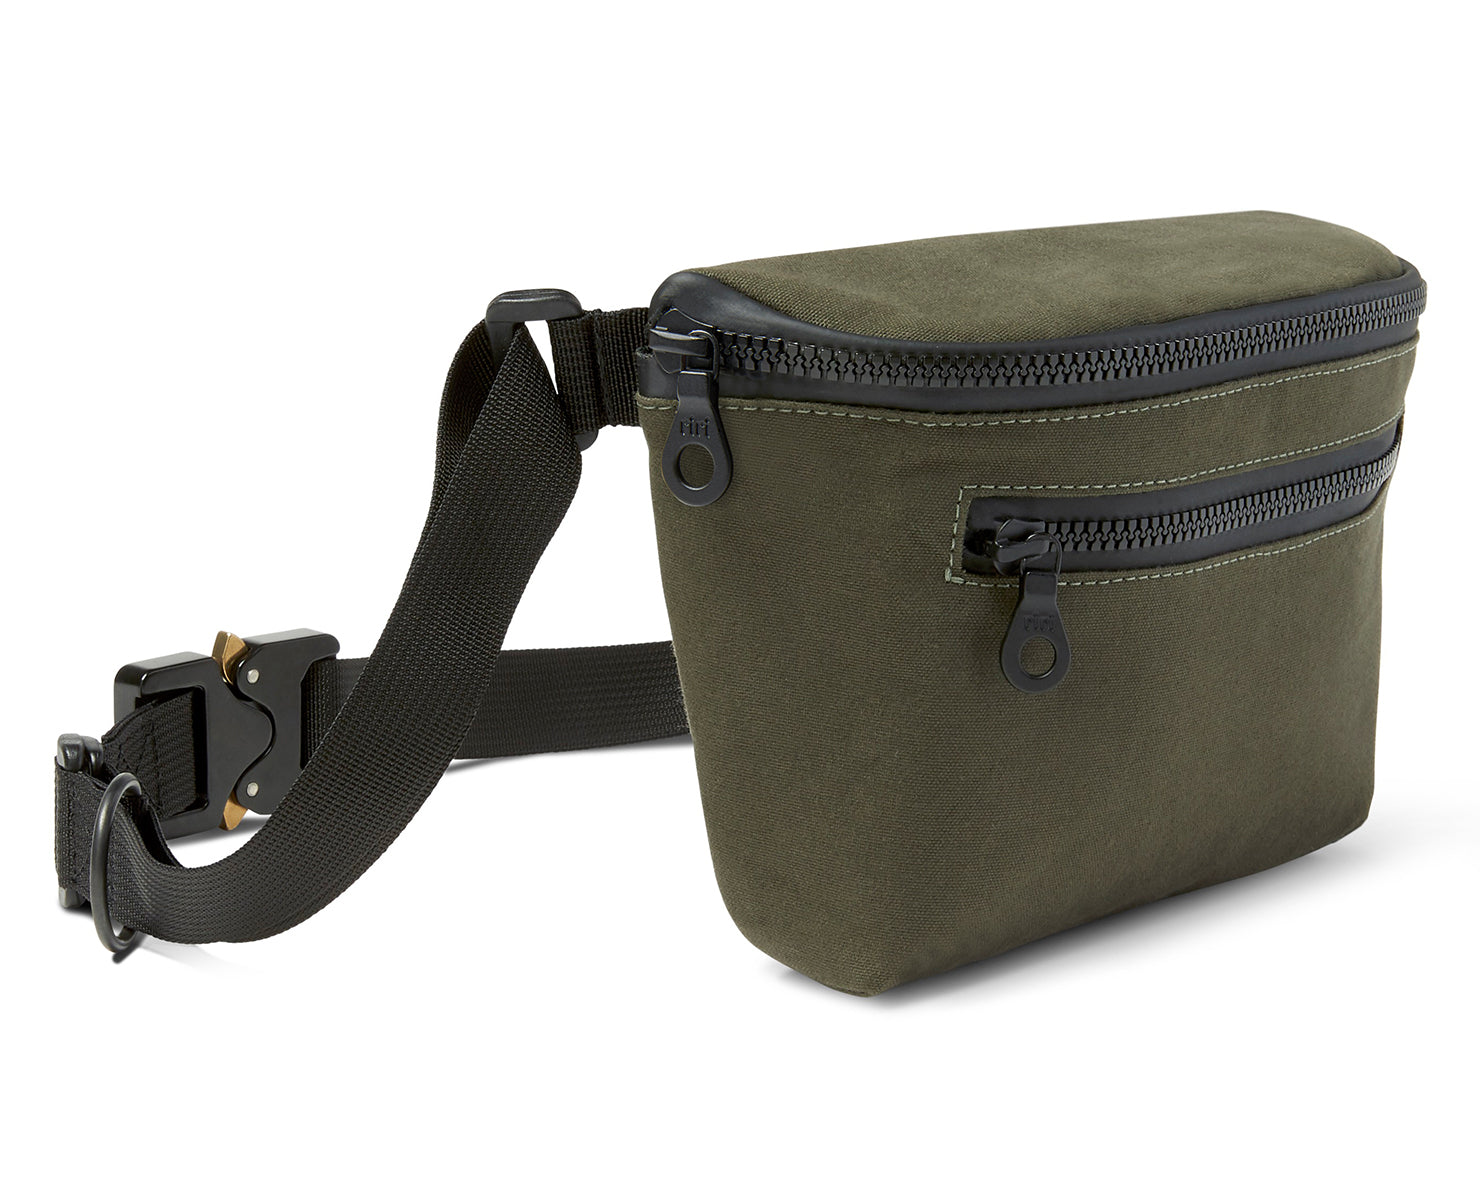 BELT BAG 2.0 | KILLSPENCER® - Olive Drab Canvas